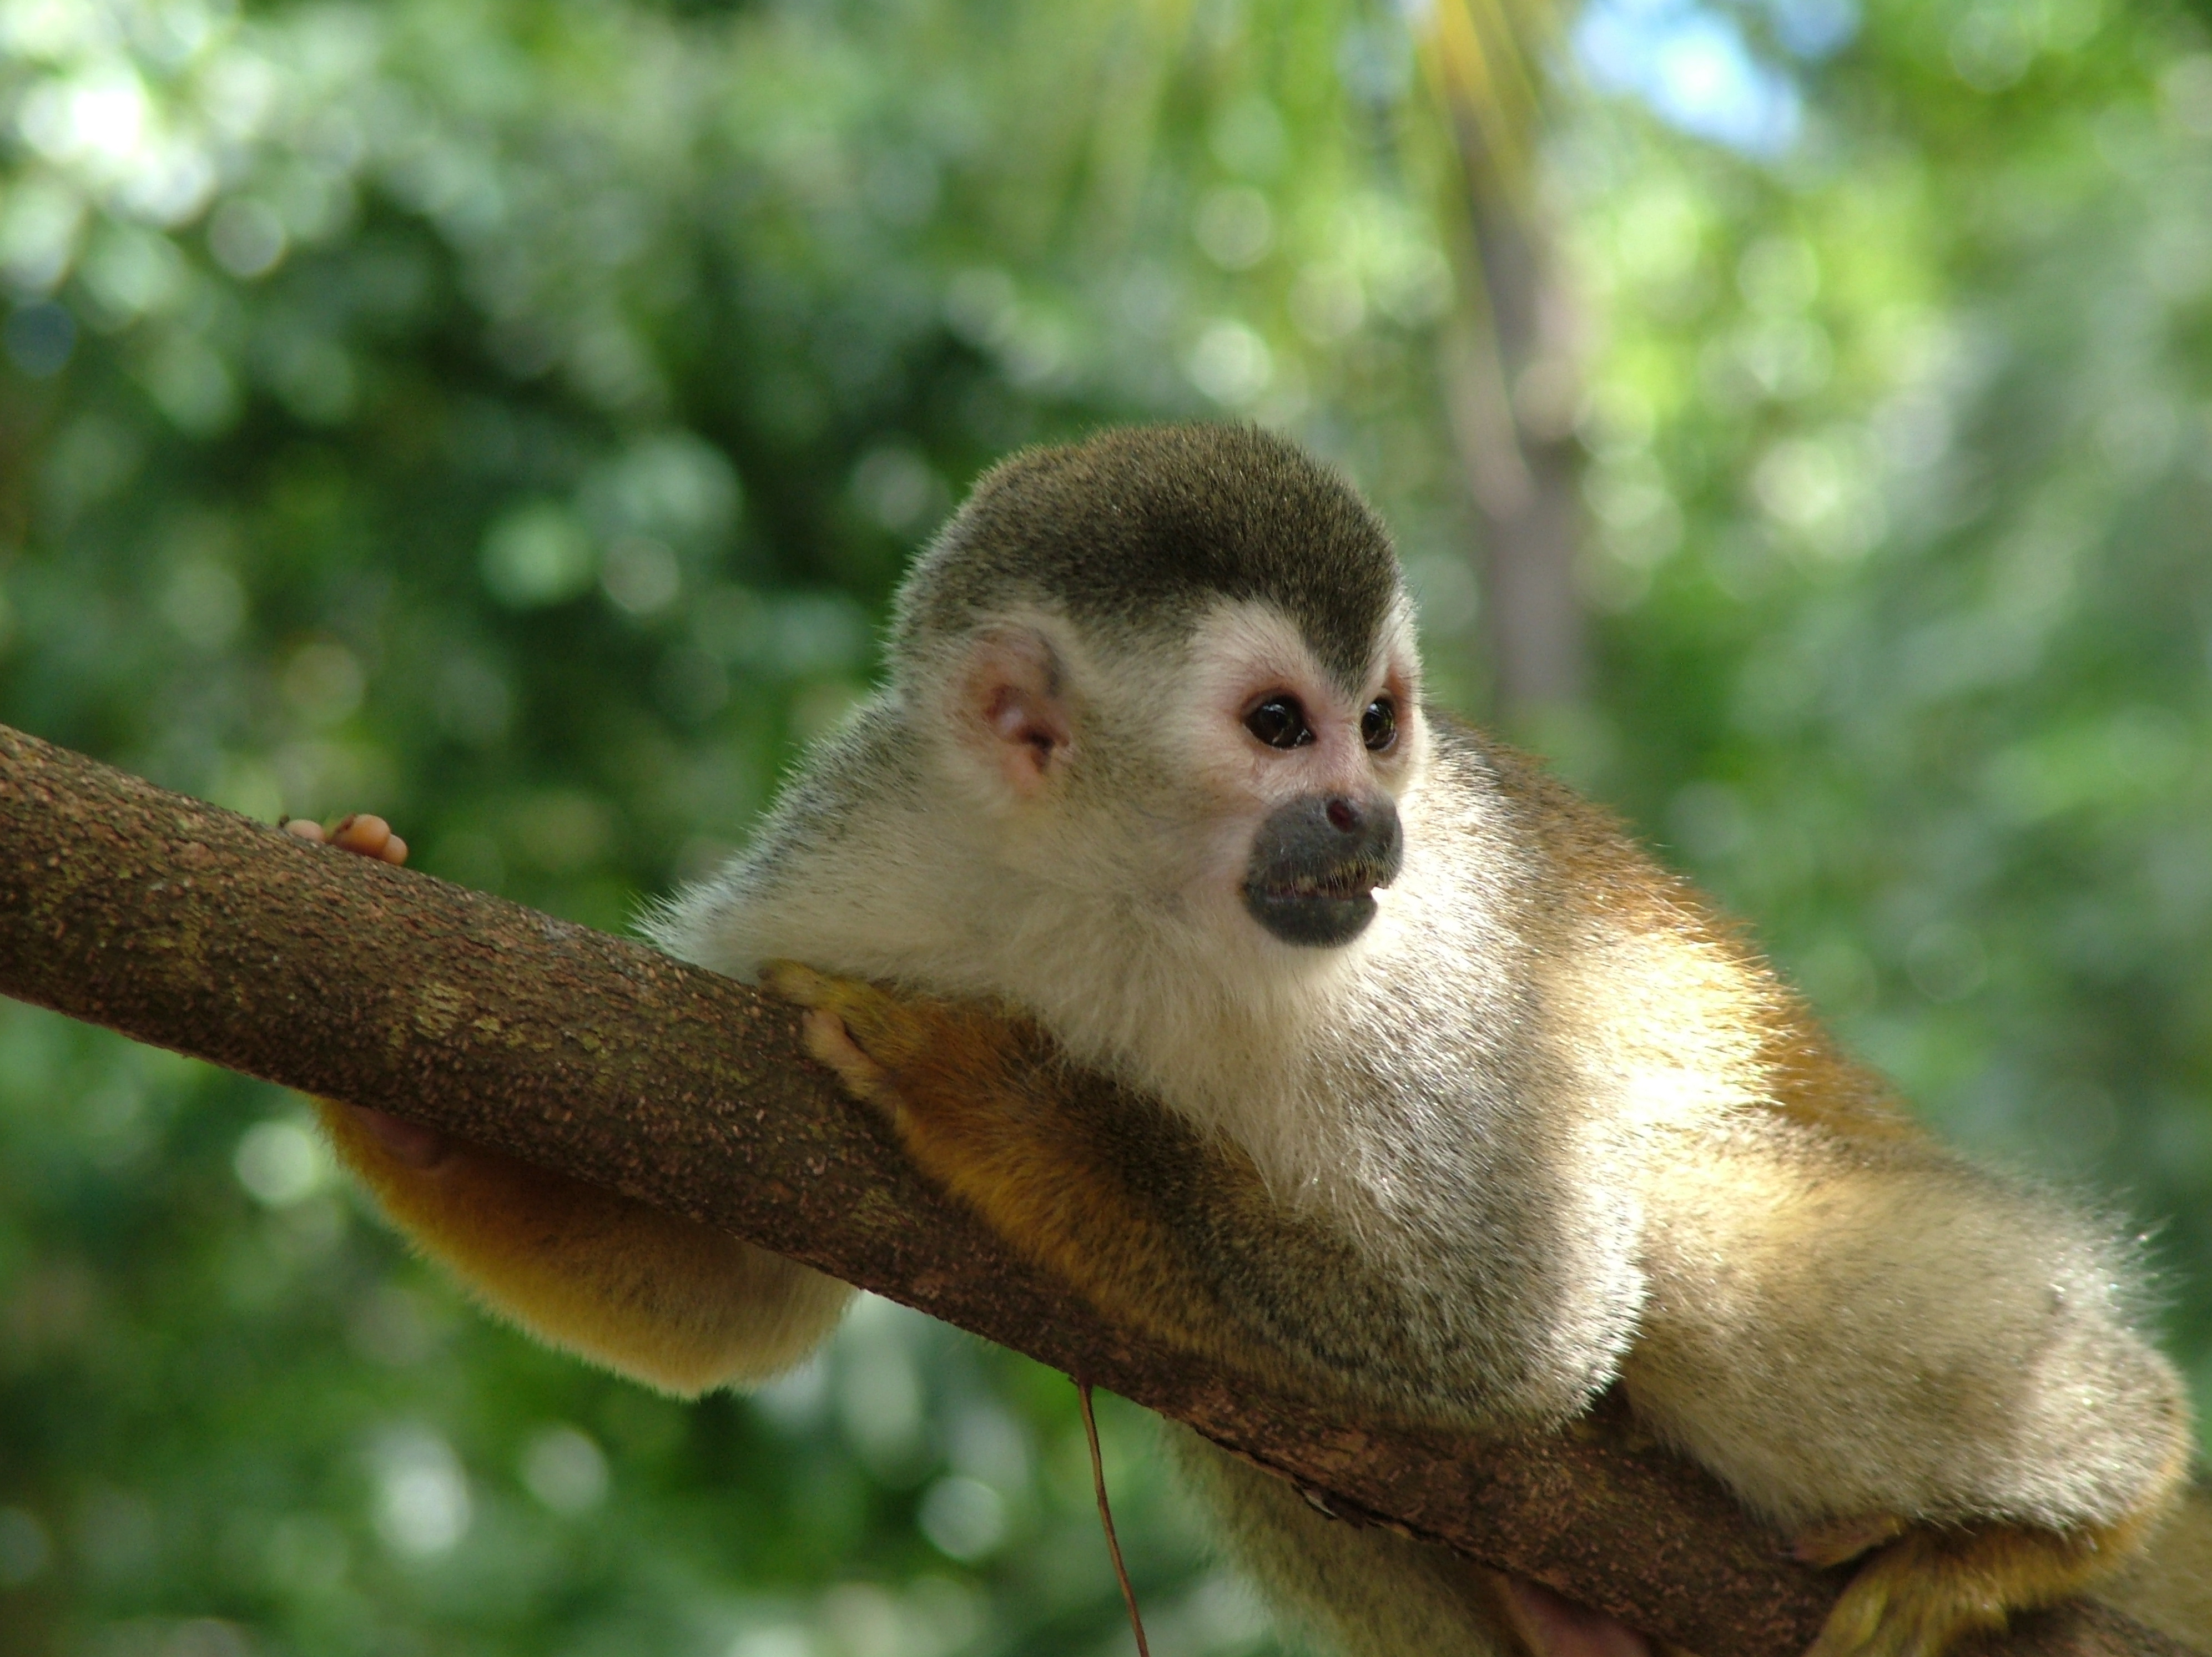 Cool wallpaper desk top wallpaper Monkey uncropped shot with 62 3985x2986